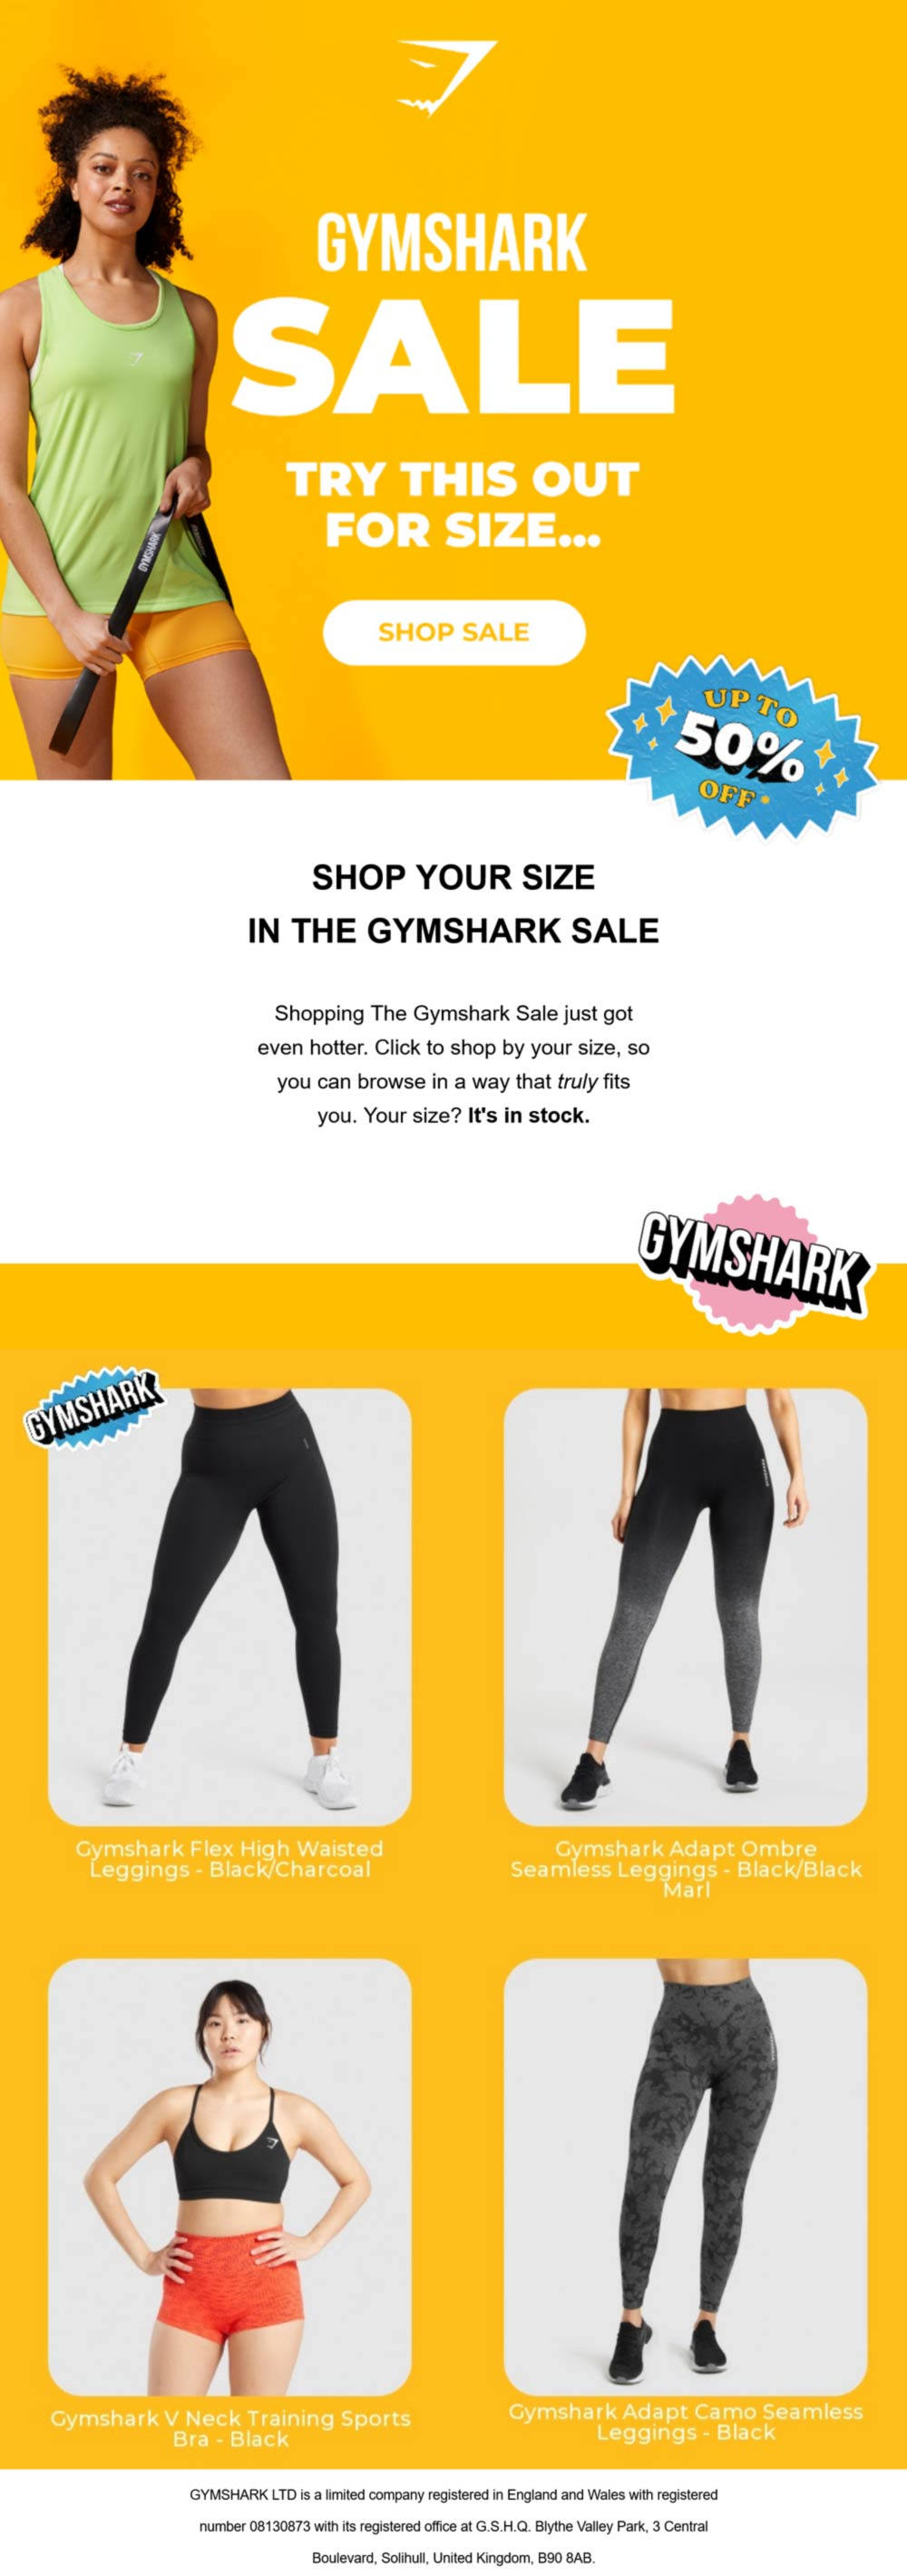 Gymshark coupons & promo code for [June 2021]